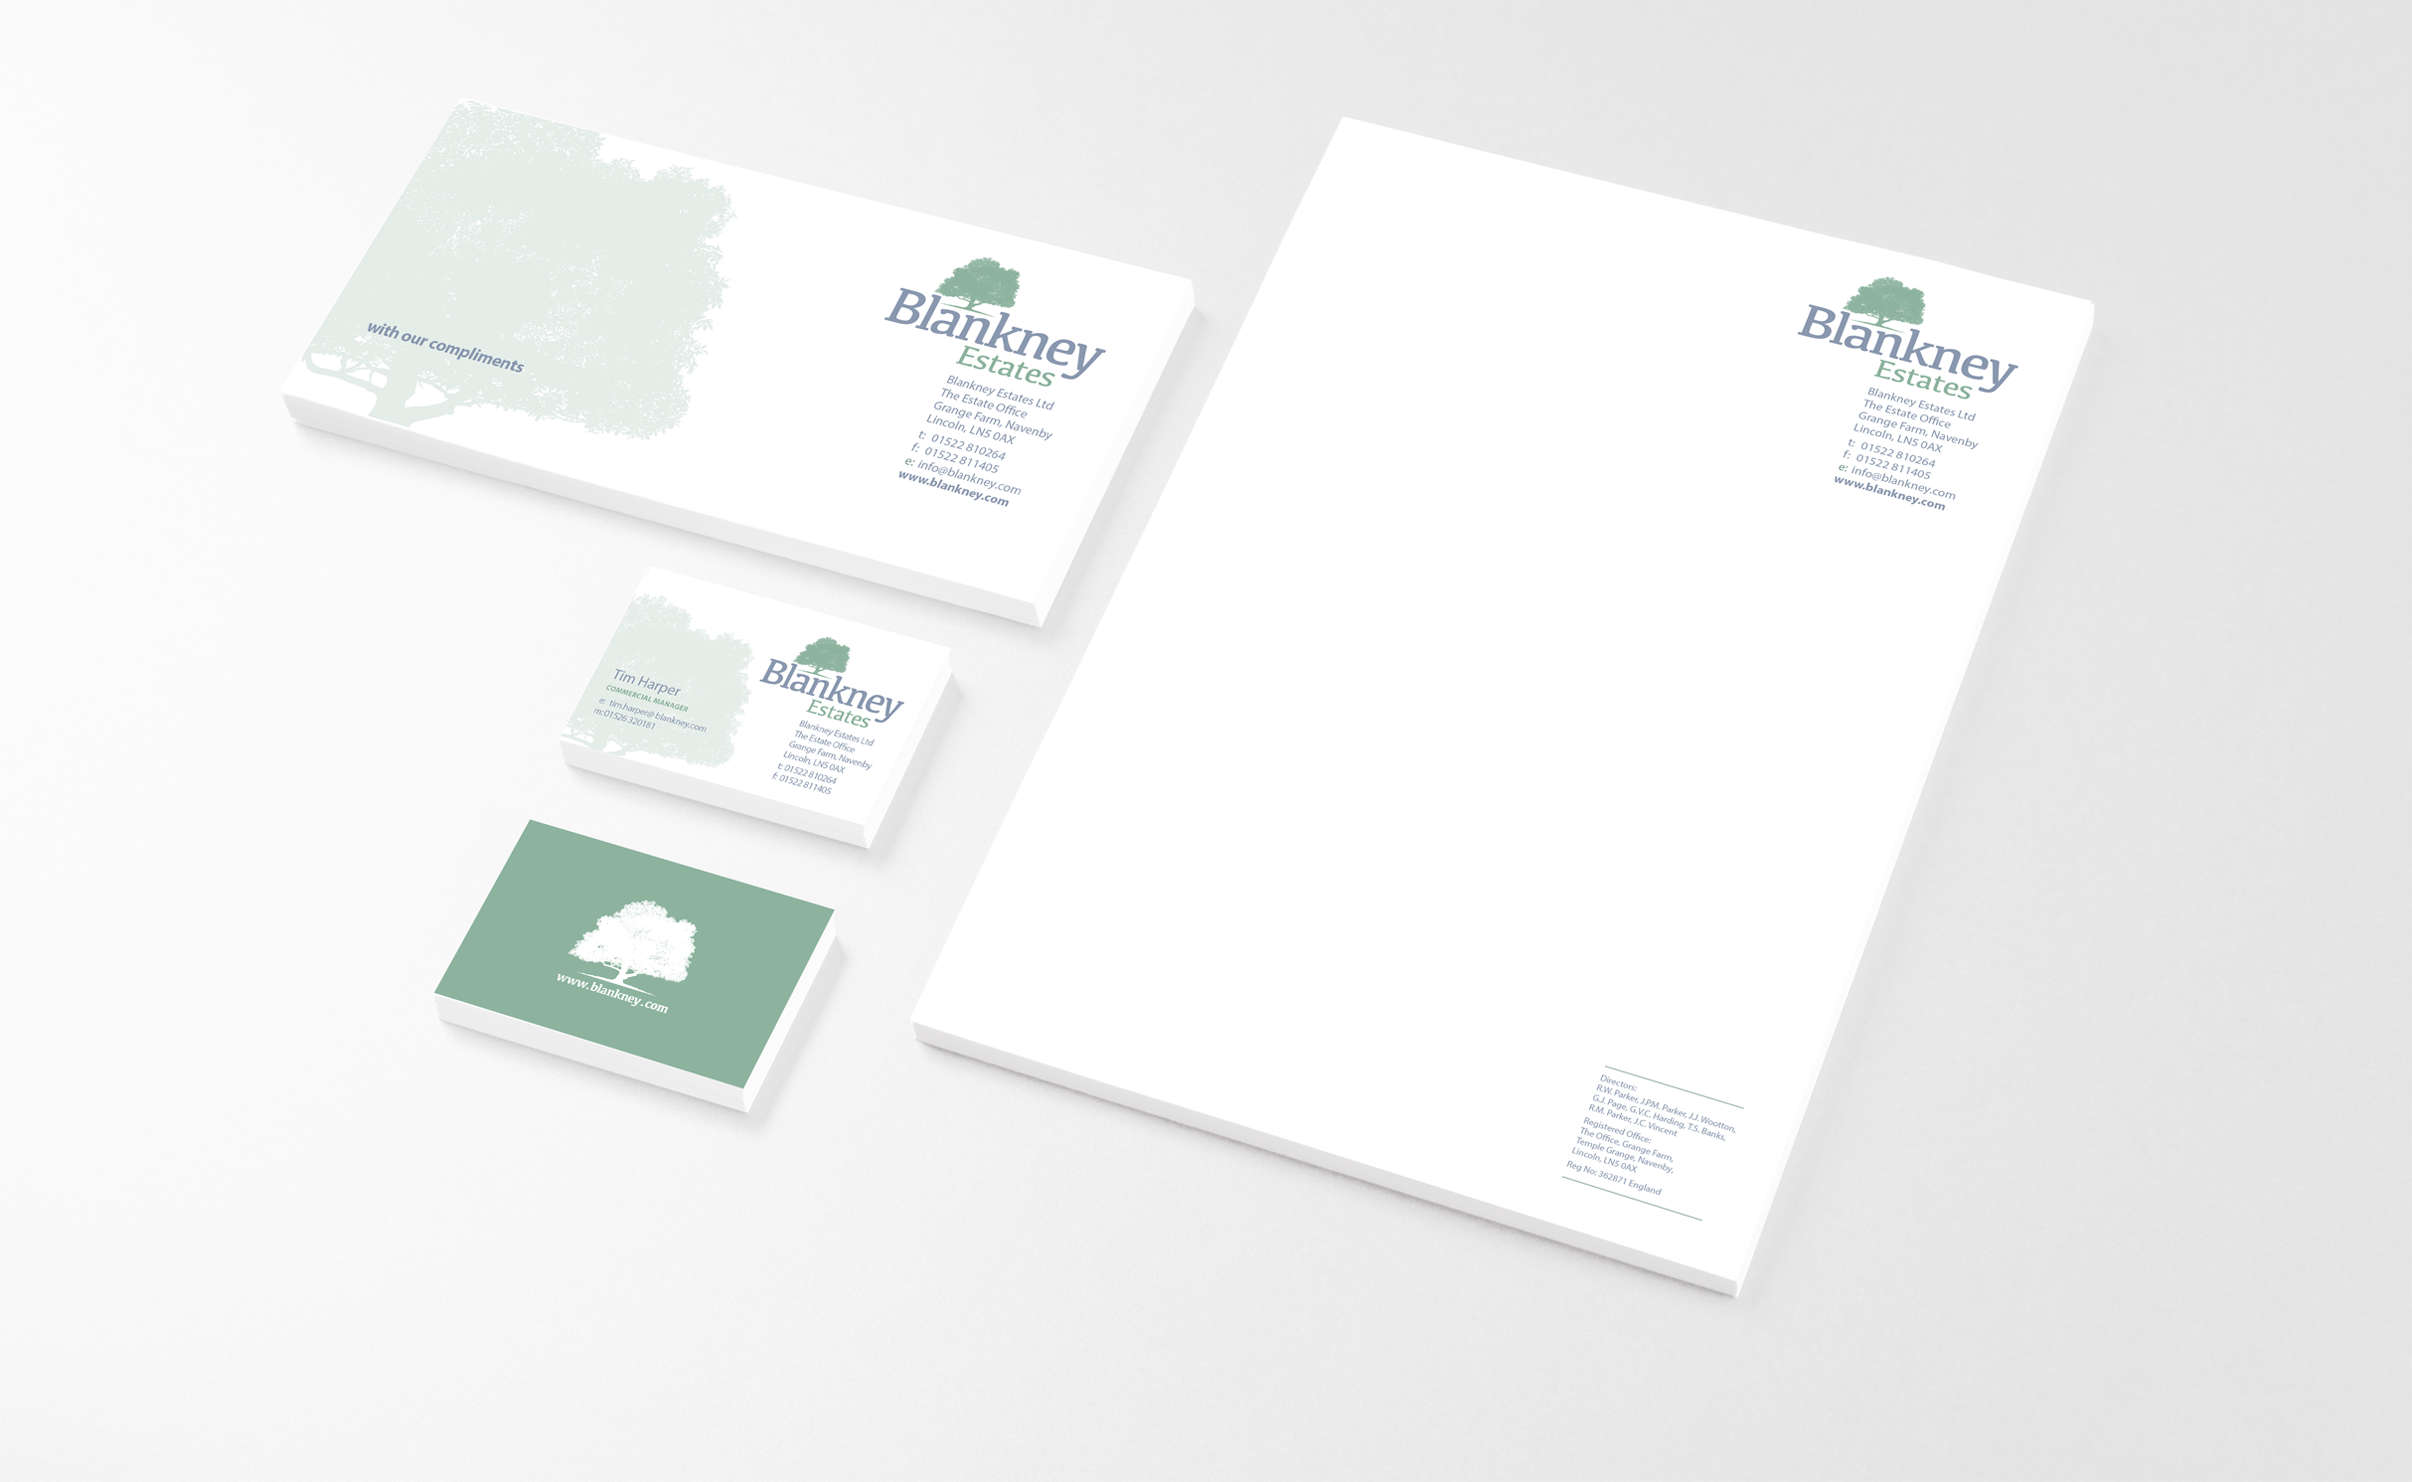 Blankney Estates literature and stationery